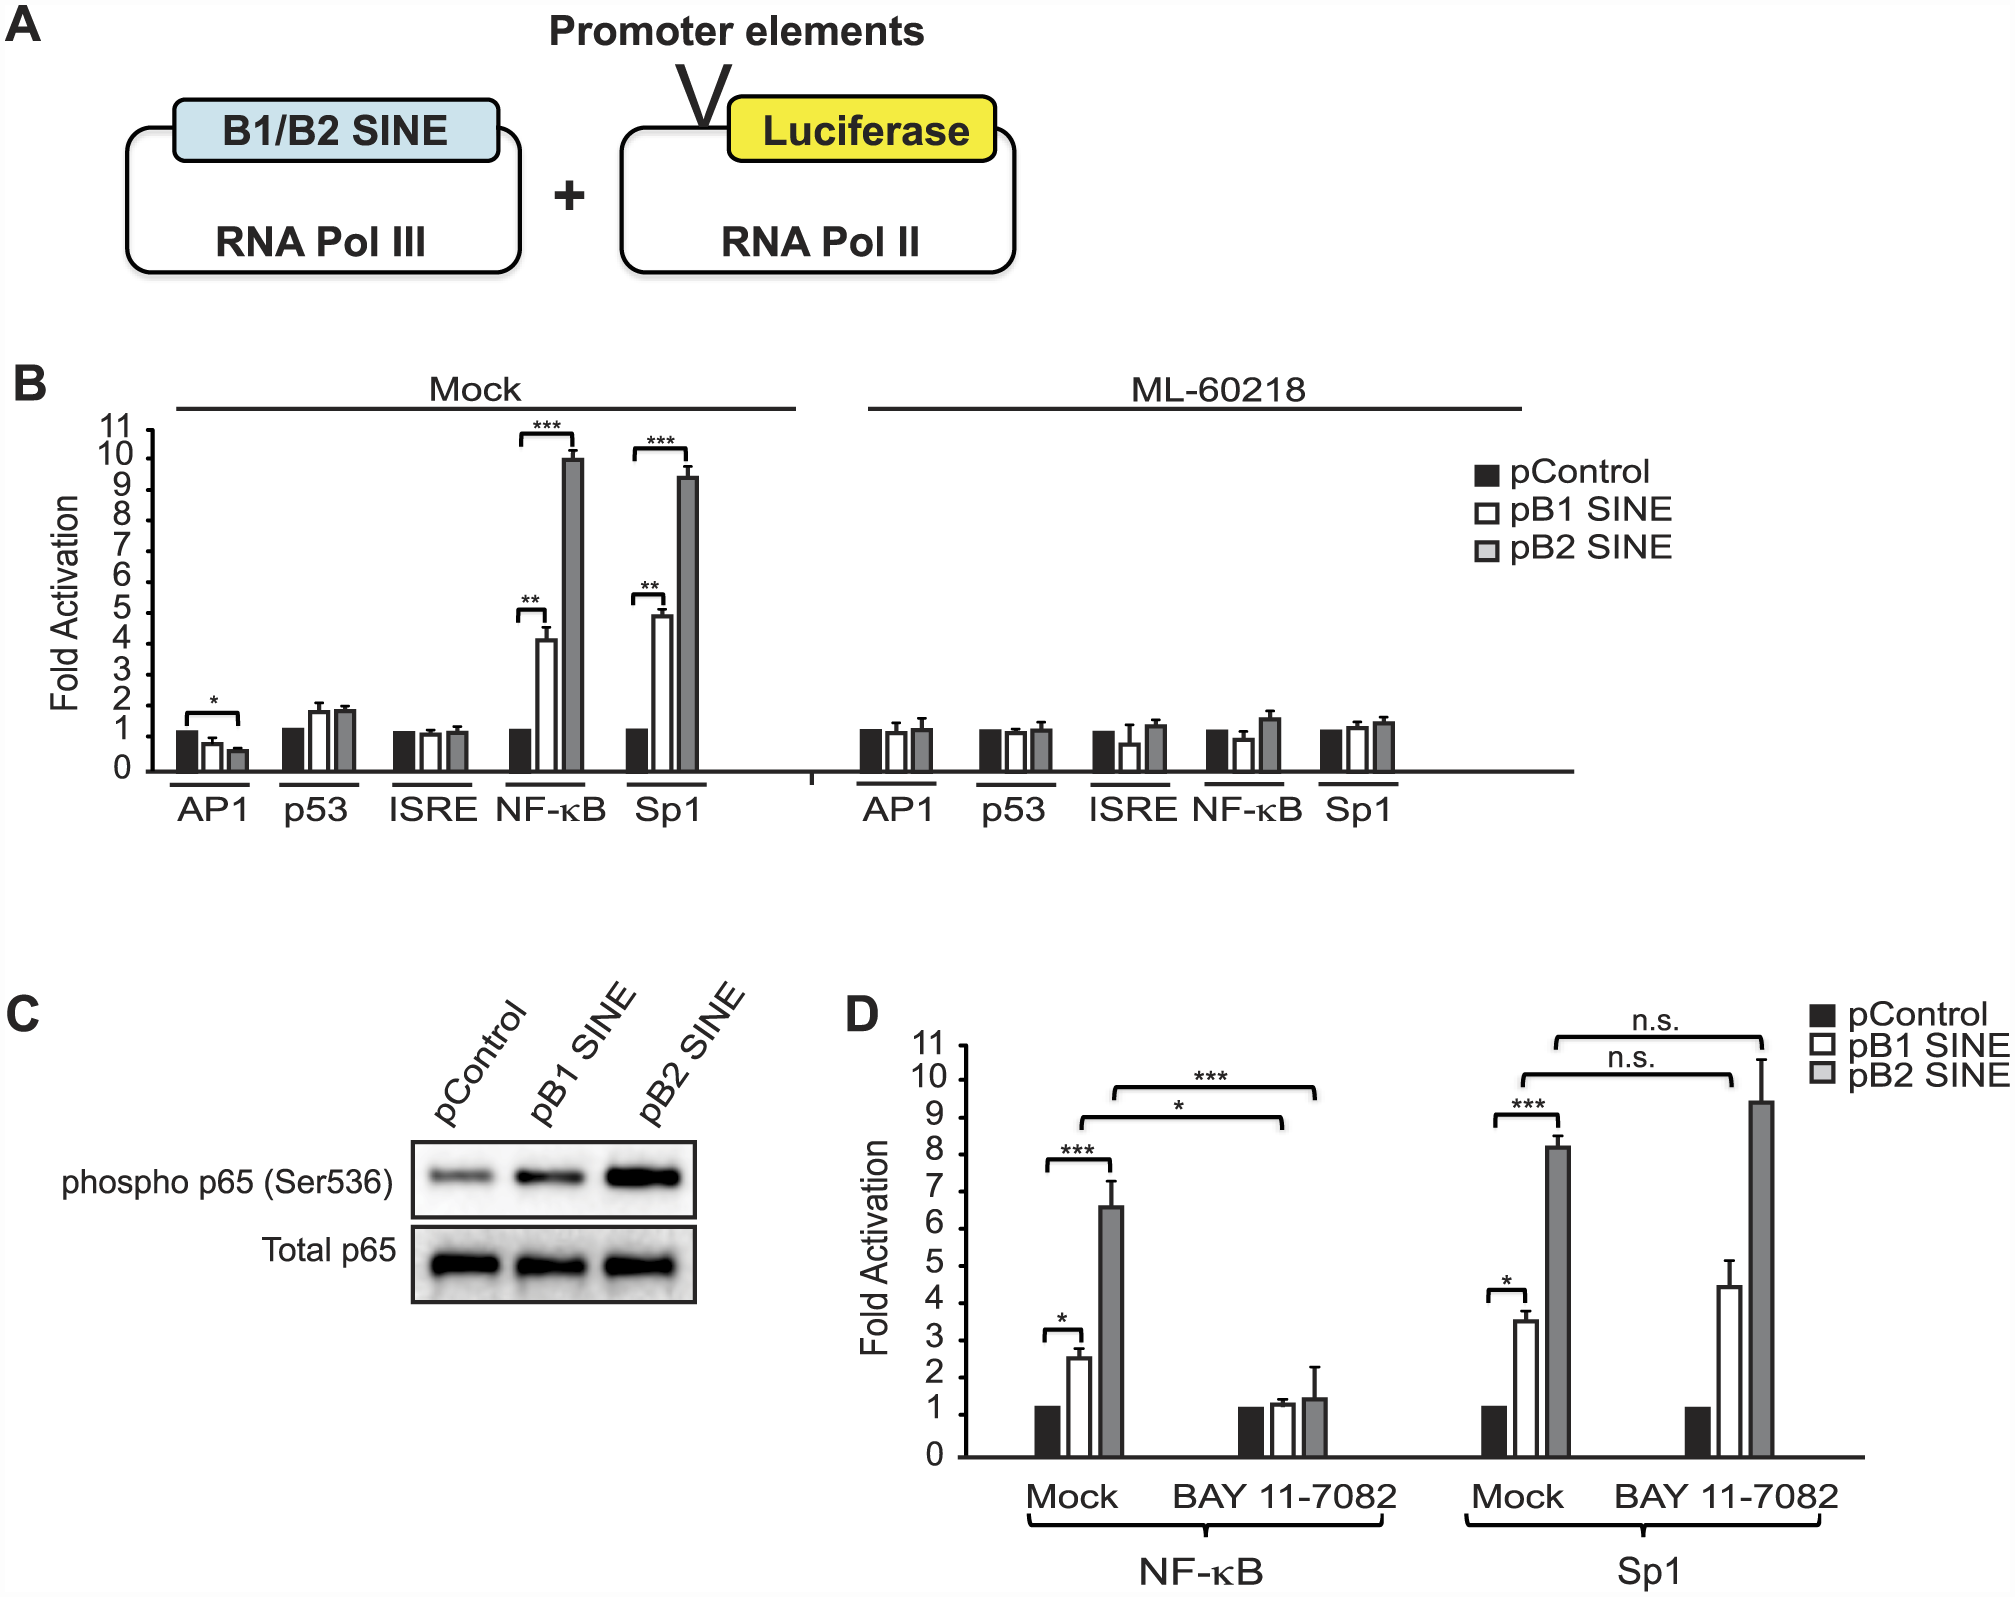 SINE RNAs activate the NF-κB pathway.